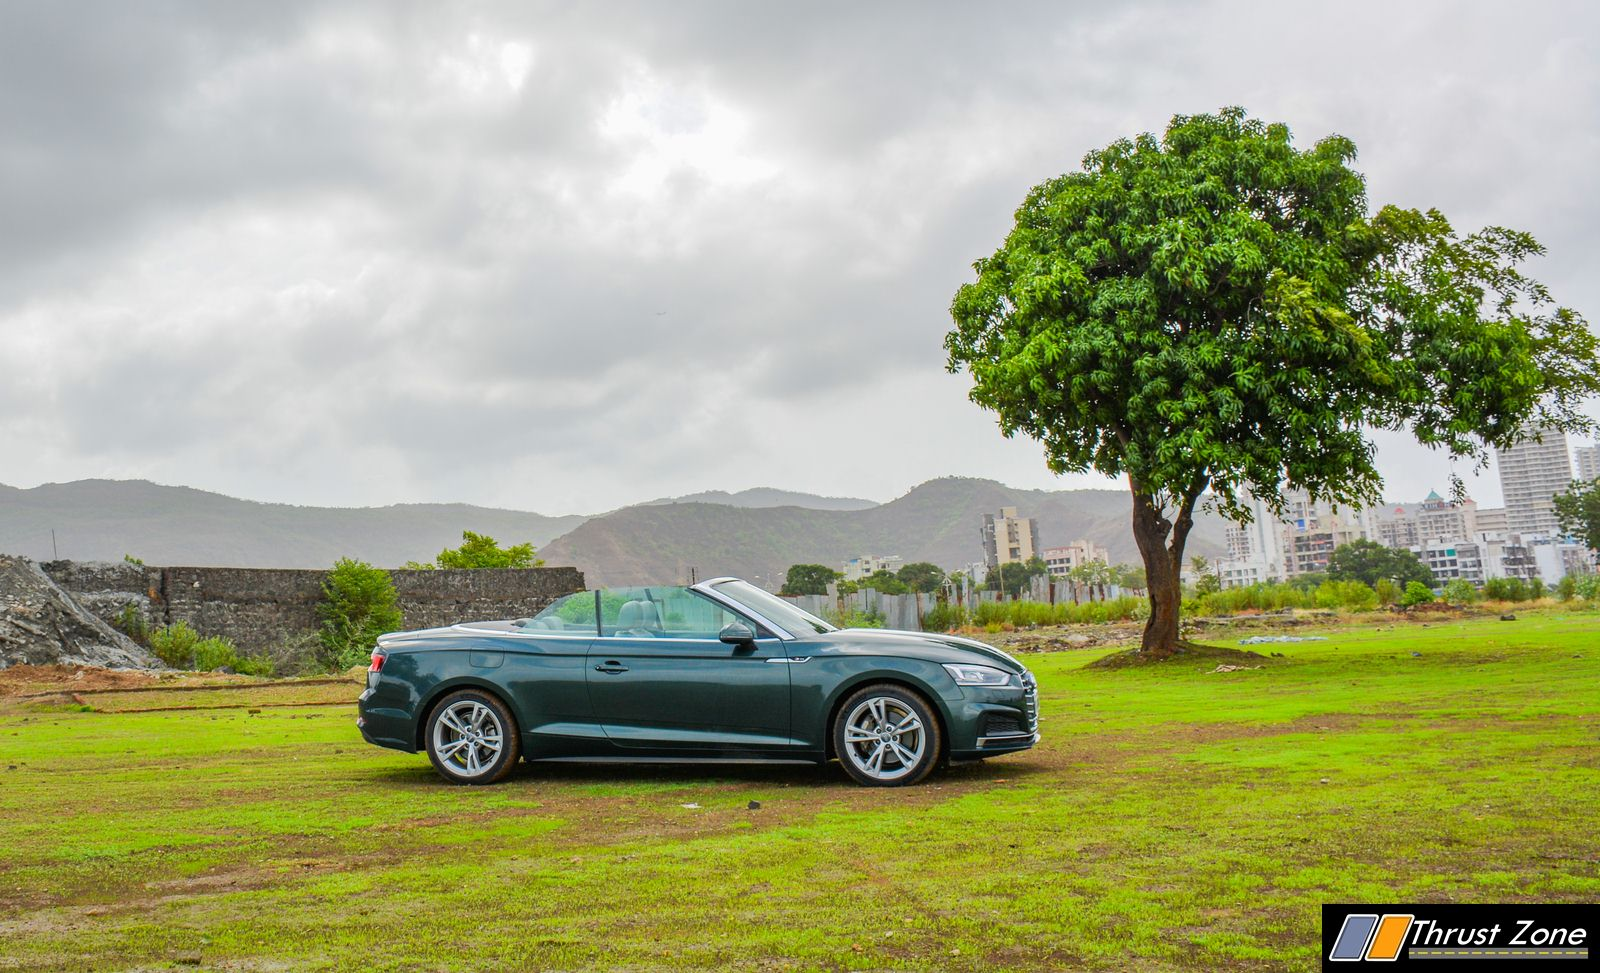 https://www.thrustzone.com/wp-content/uploads/2019/06/2019-Audi-A5-Cabriolet-Convertible-India-Diesel-Review-17.jpg